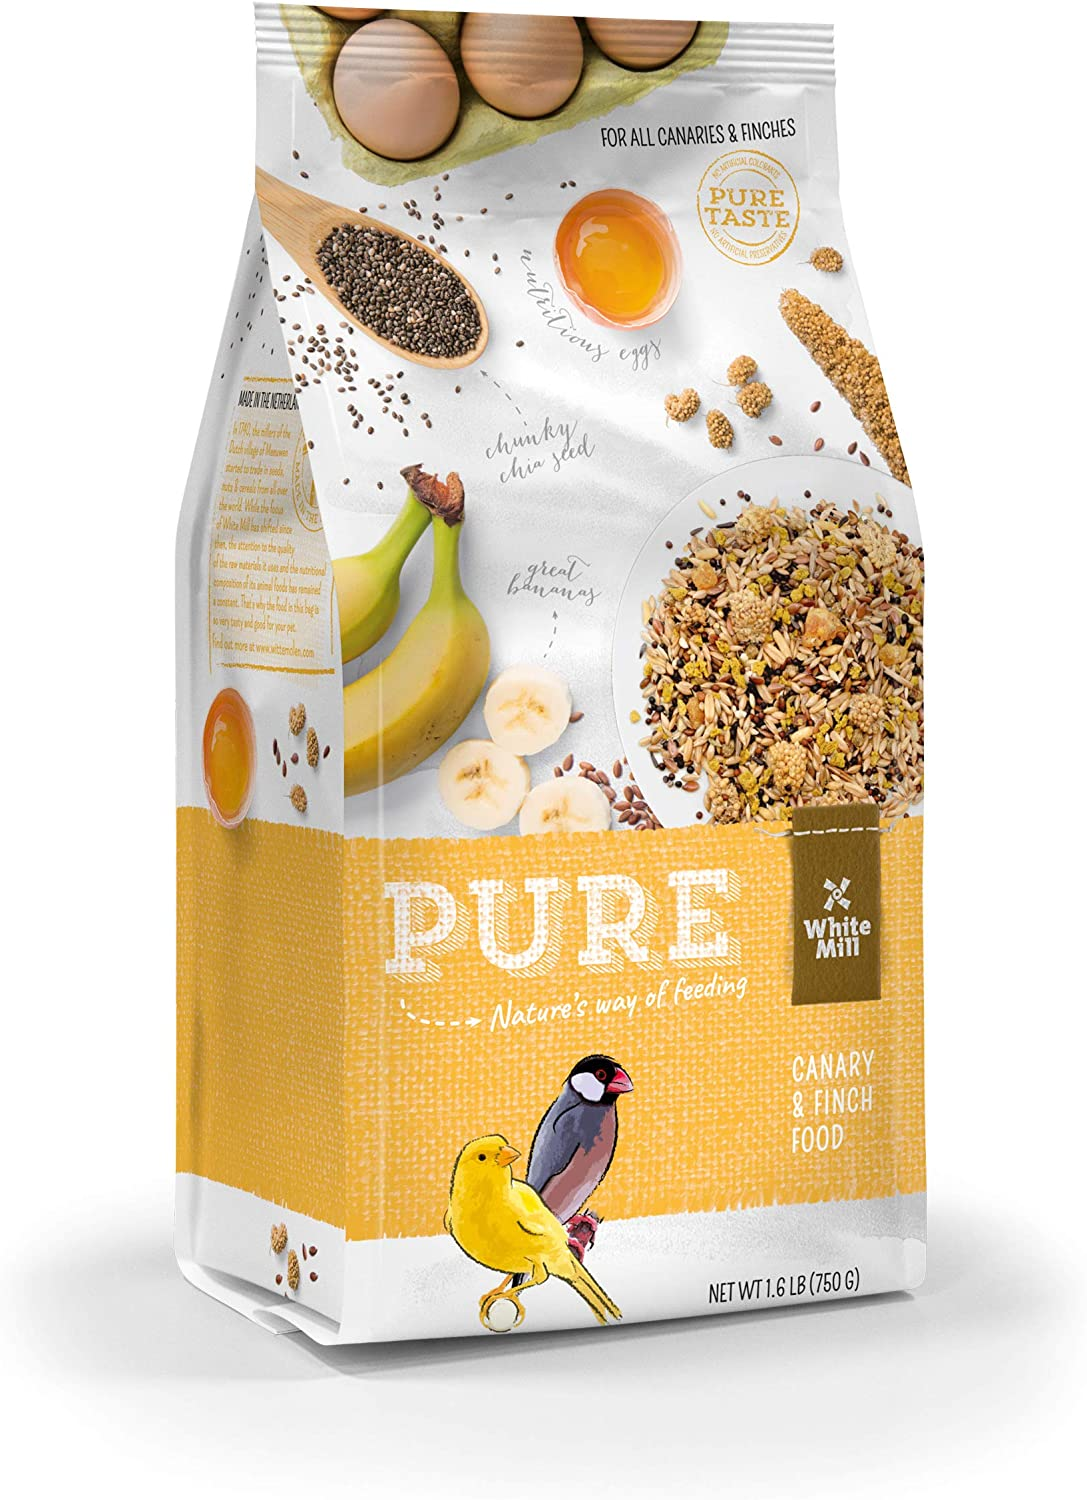 Witte Molen Pure Treat Stick Apple, Pear, Egg Pure Gourmet Seed Sticks and Gourmet Seed Mixture with chia (Yellow-Coated Canary, Goldfinch, Zebra Finch)